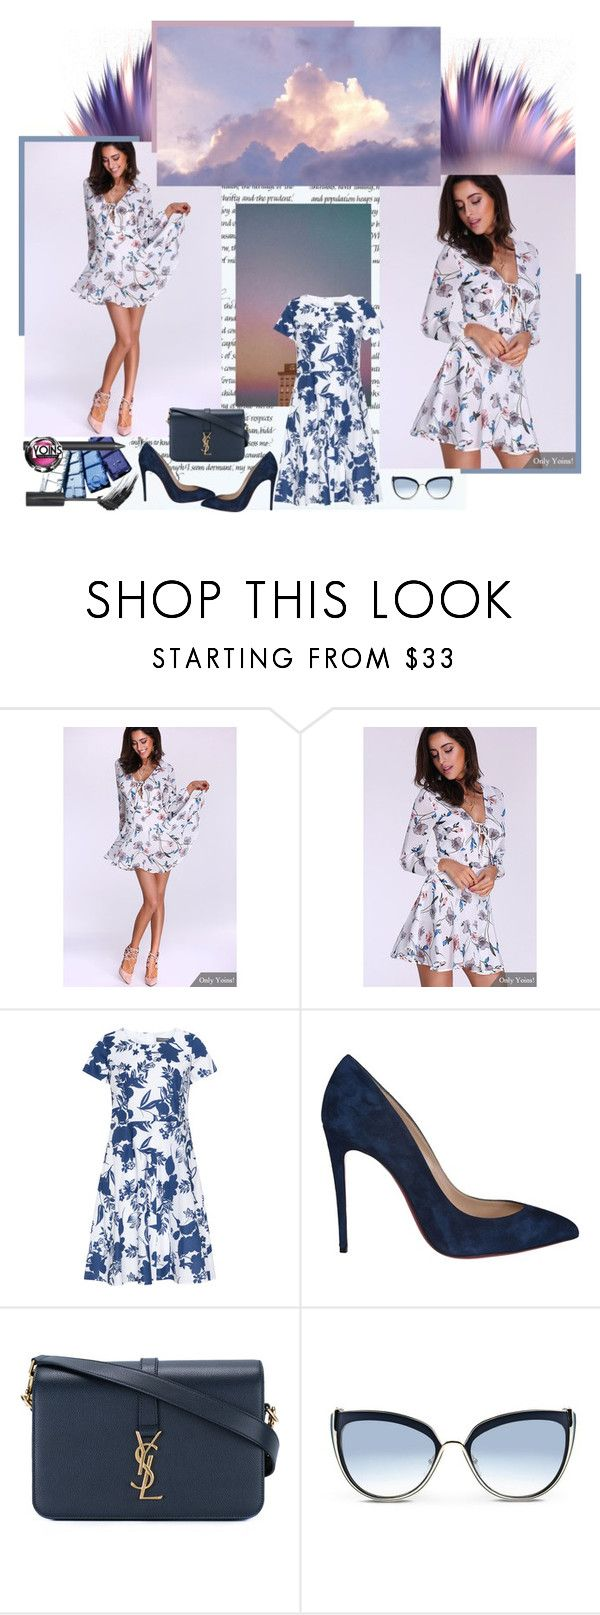 """""""What a beautiful day!"""" by vivienlacroix ❤ liked on Polyvore featuring Christian Louboutin, Yves Saint Laurent and Karl Lagerfeld"""